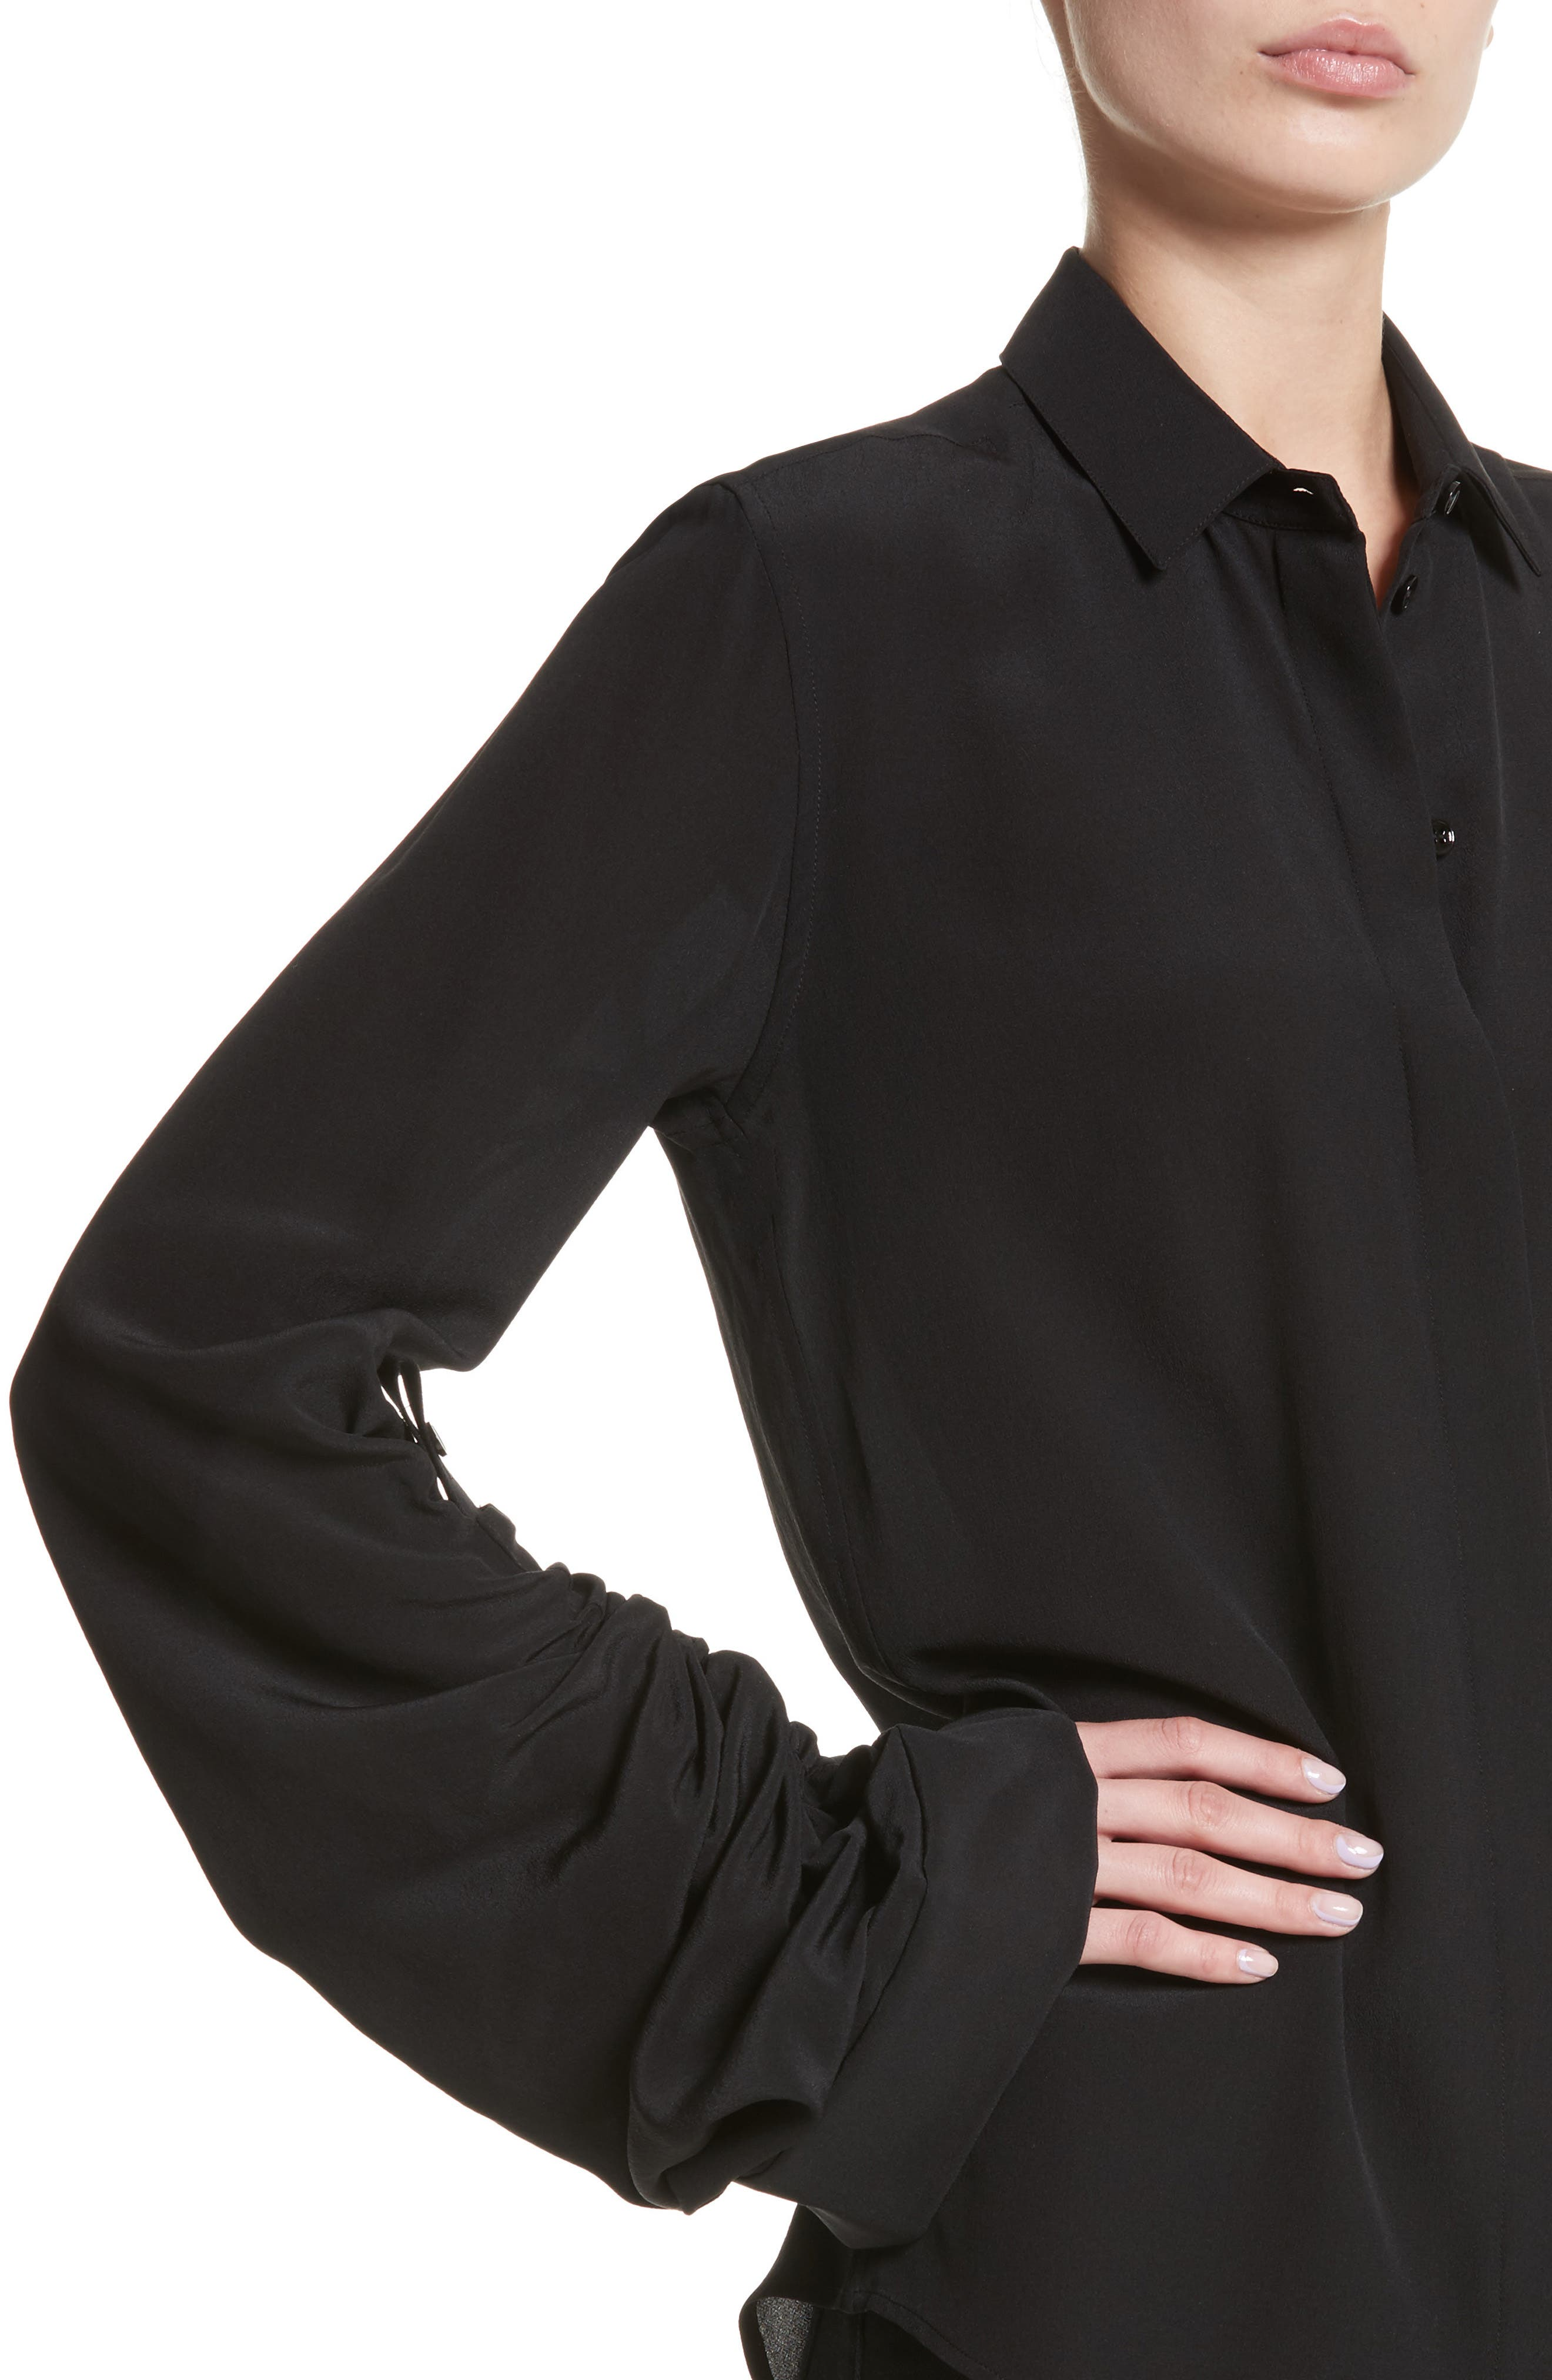 Exaggerated Sleeve Silk Blouse,                             Alternate thumbnail 4, color,                             001